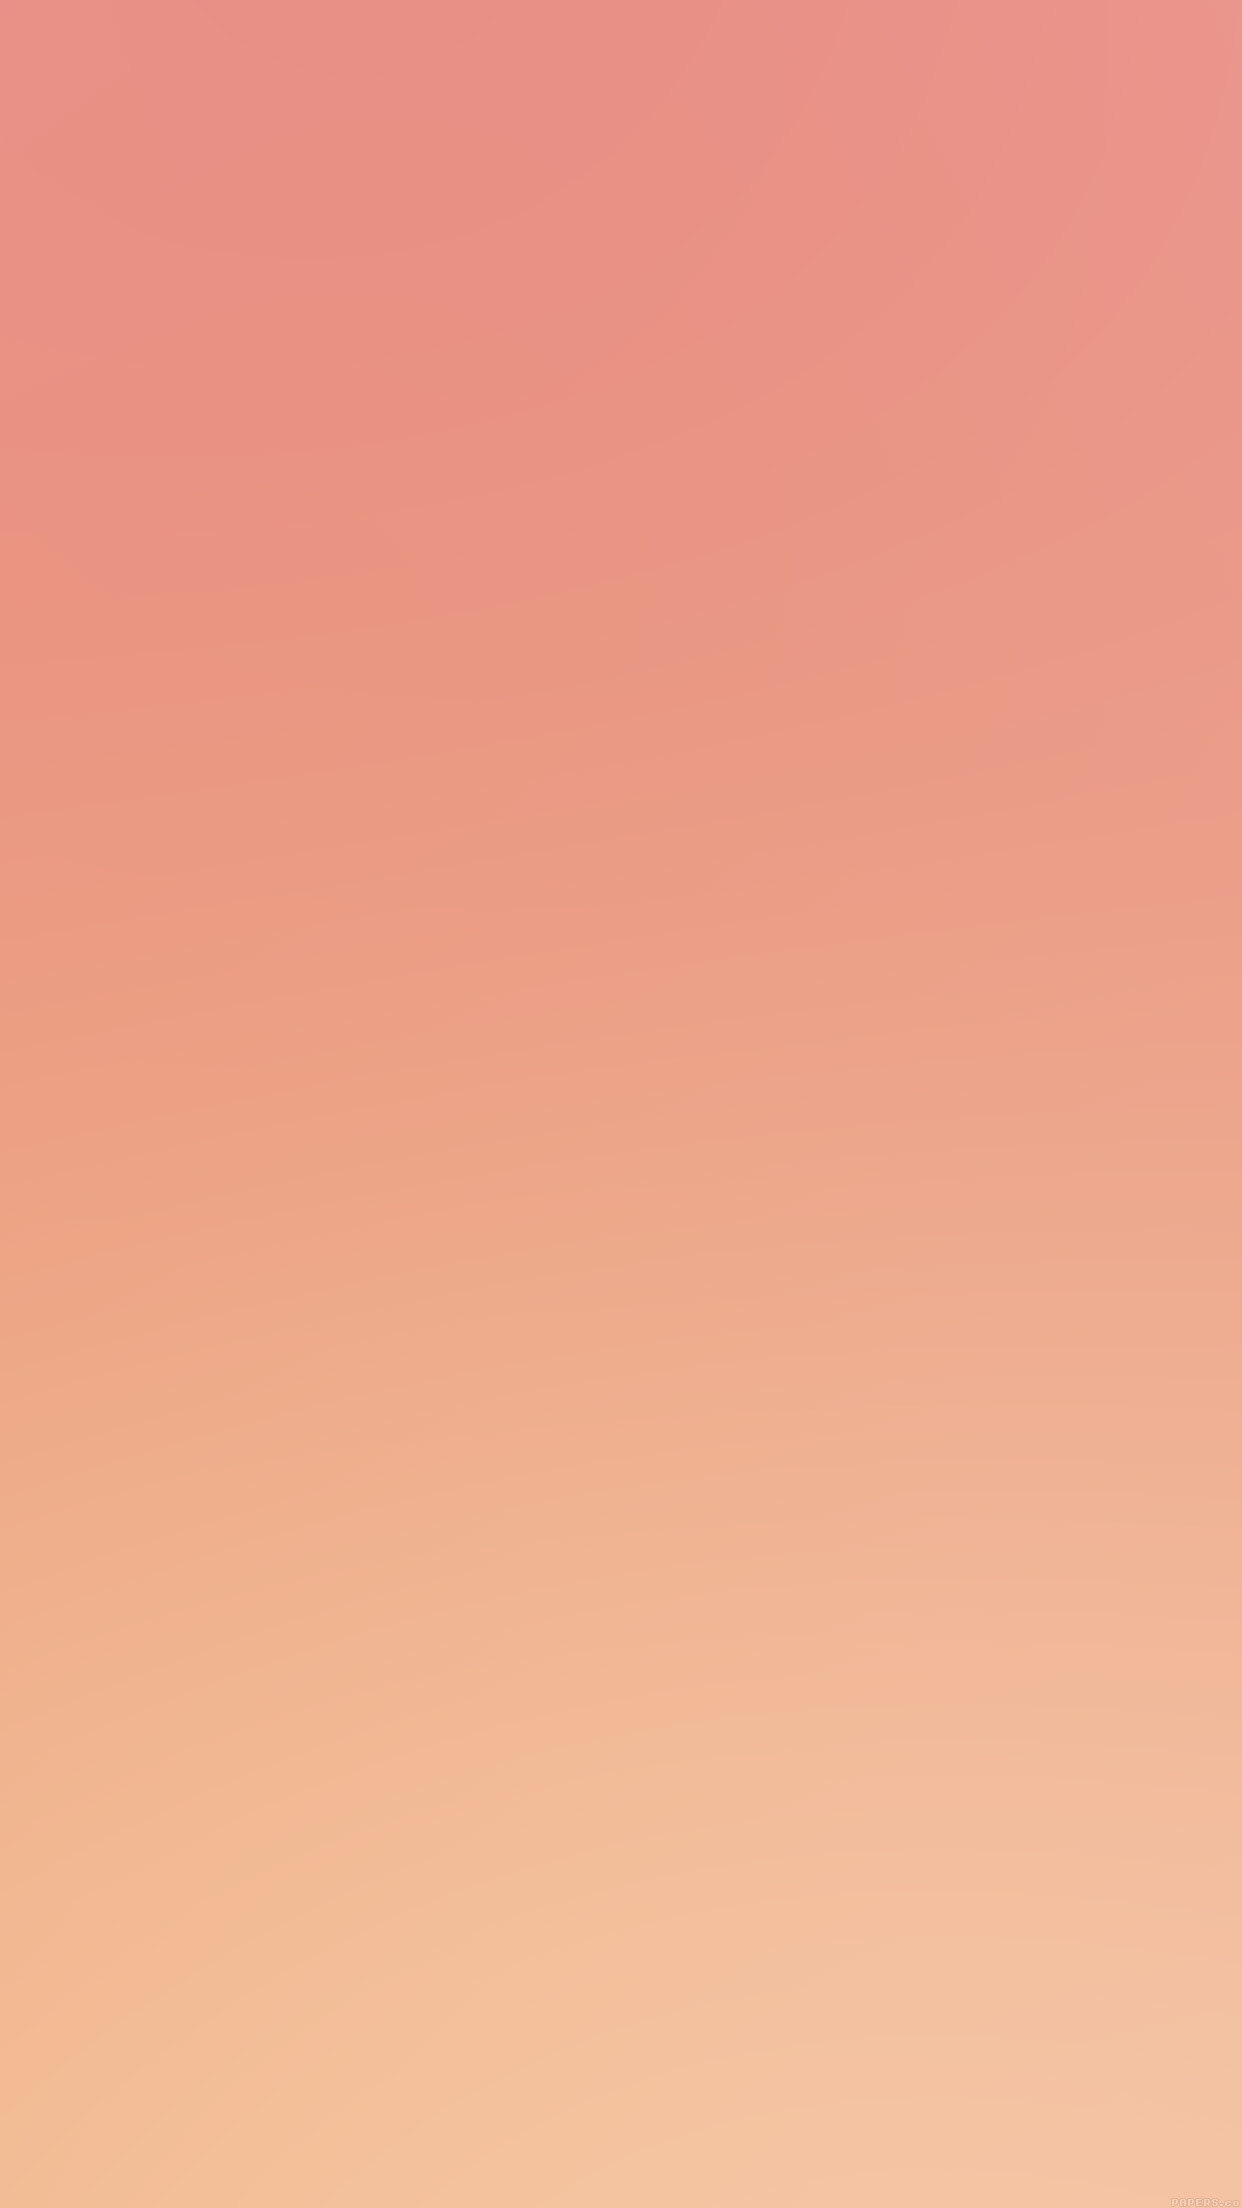 peach color wallpaper  I Love Papers | se51-peach-gradation-blur